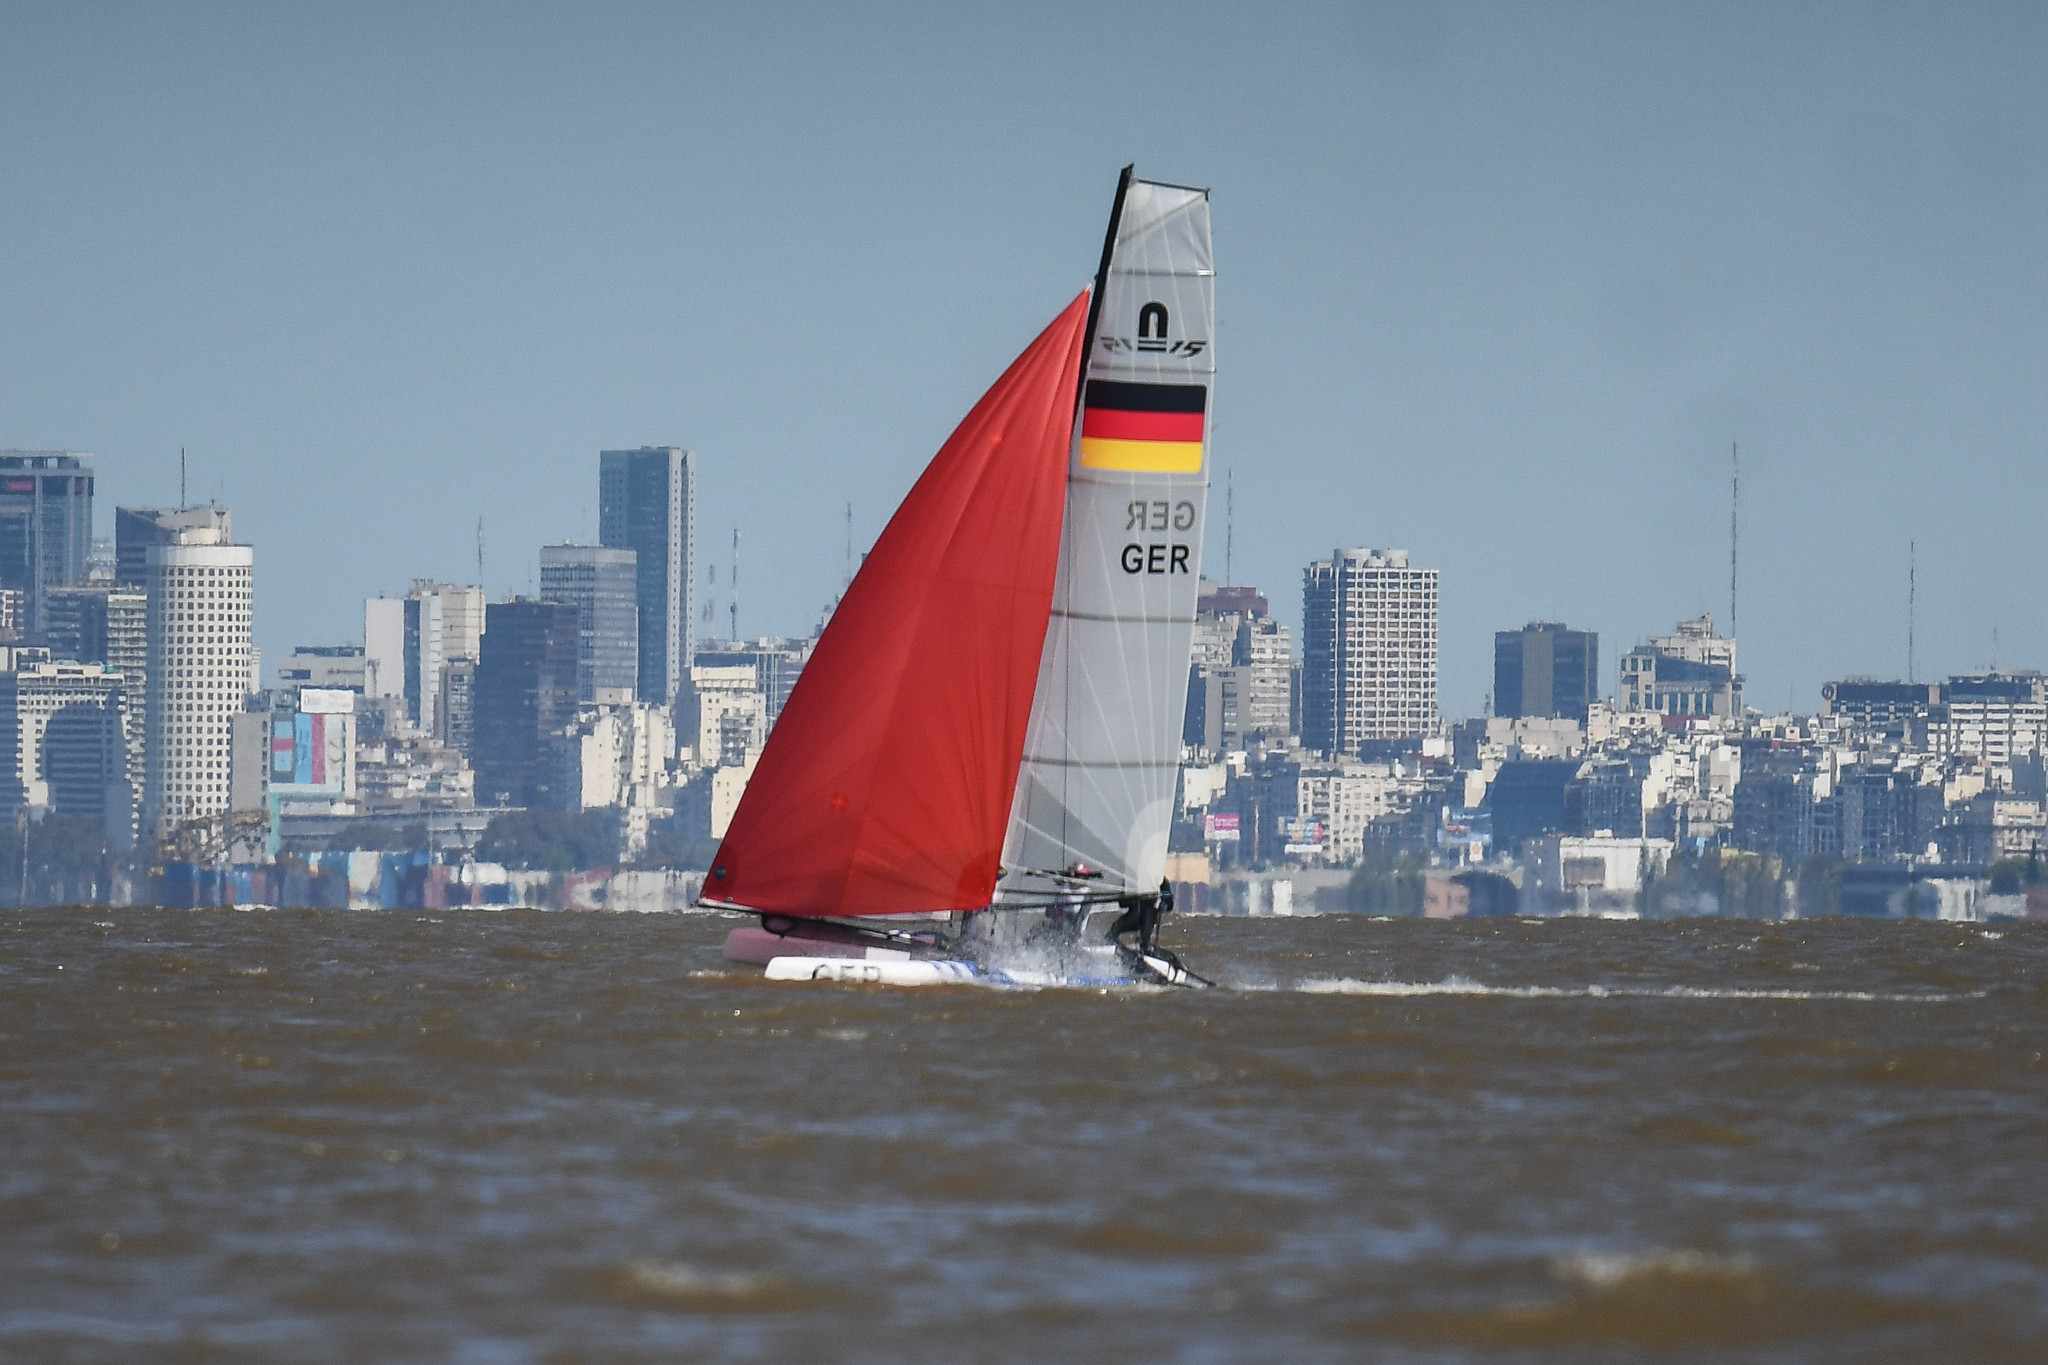 World Sailing propose changes to 2024 Olympic regatta on eve of Annual Conference